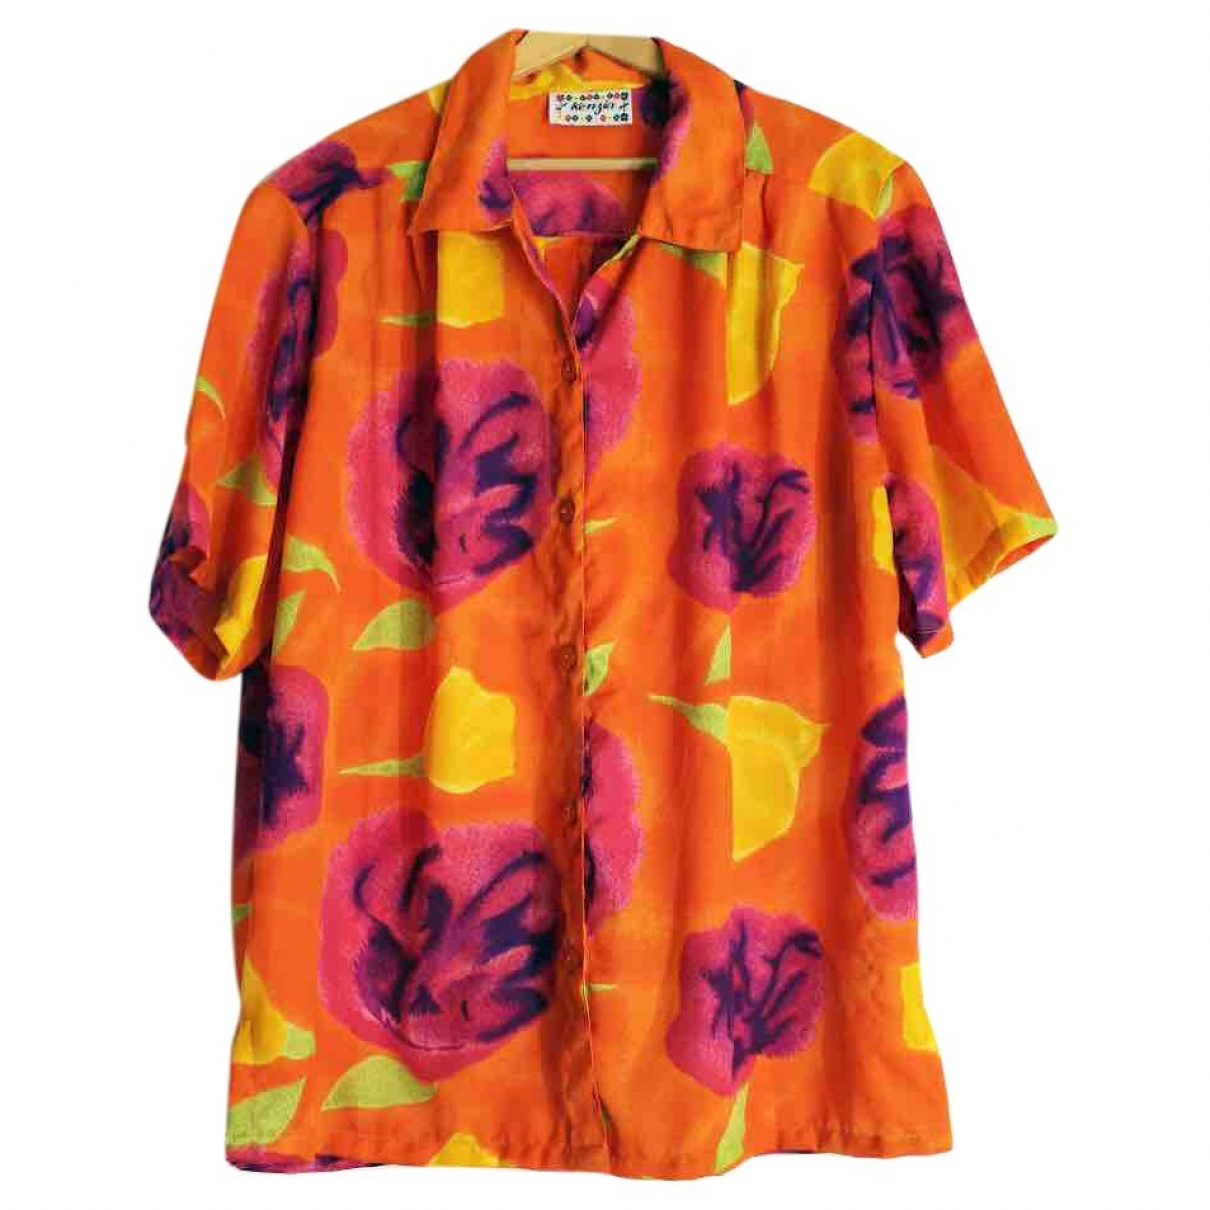 Non Signé / Unsigned Oversize Orange  top for Women One Size IT